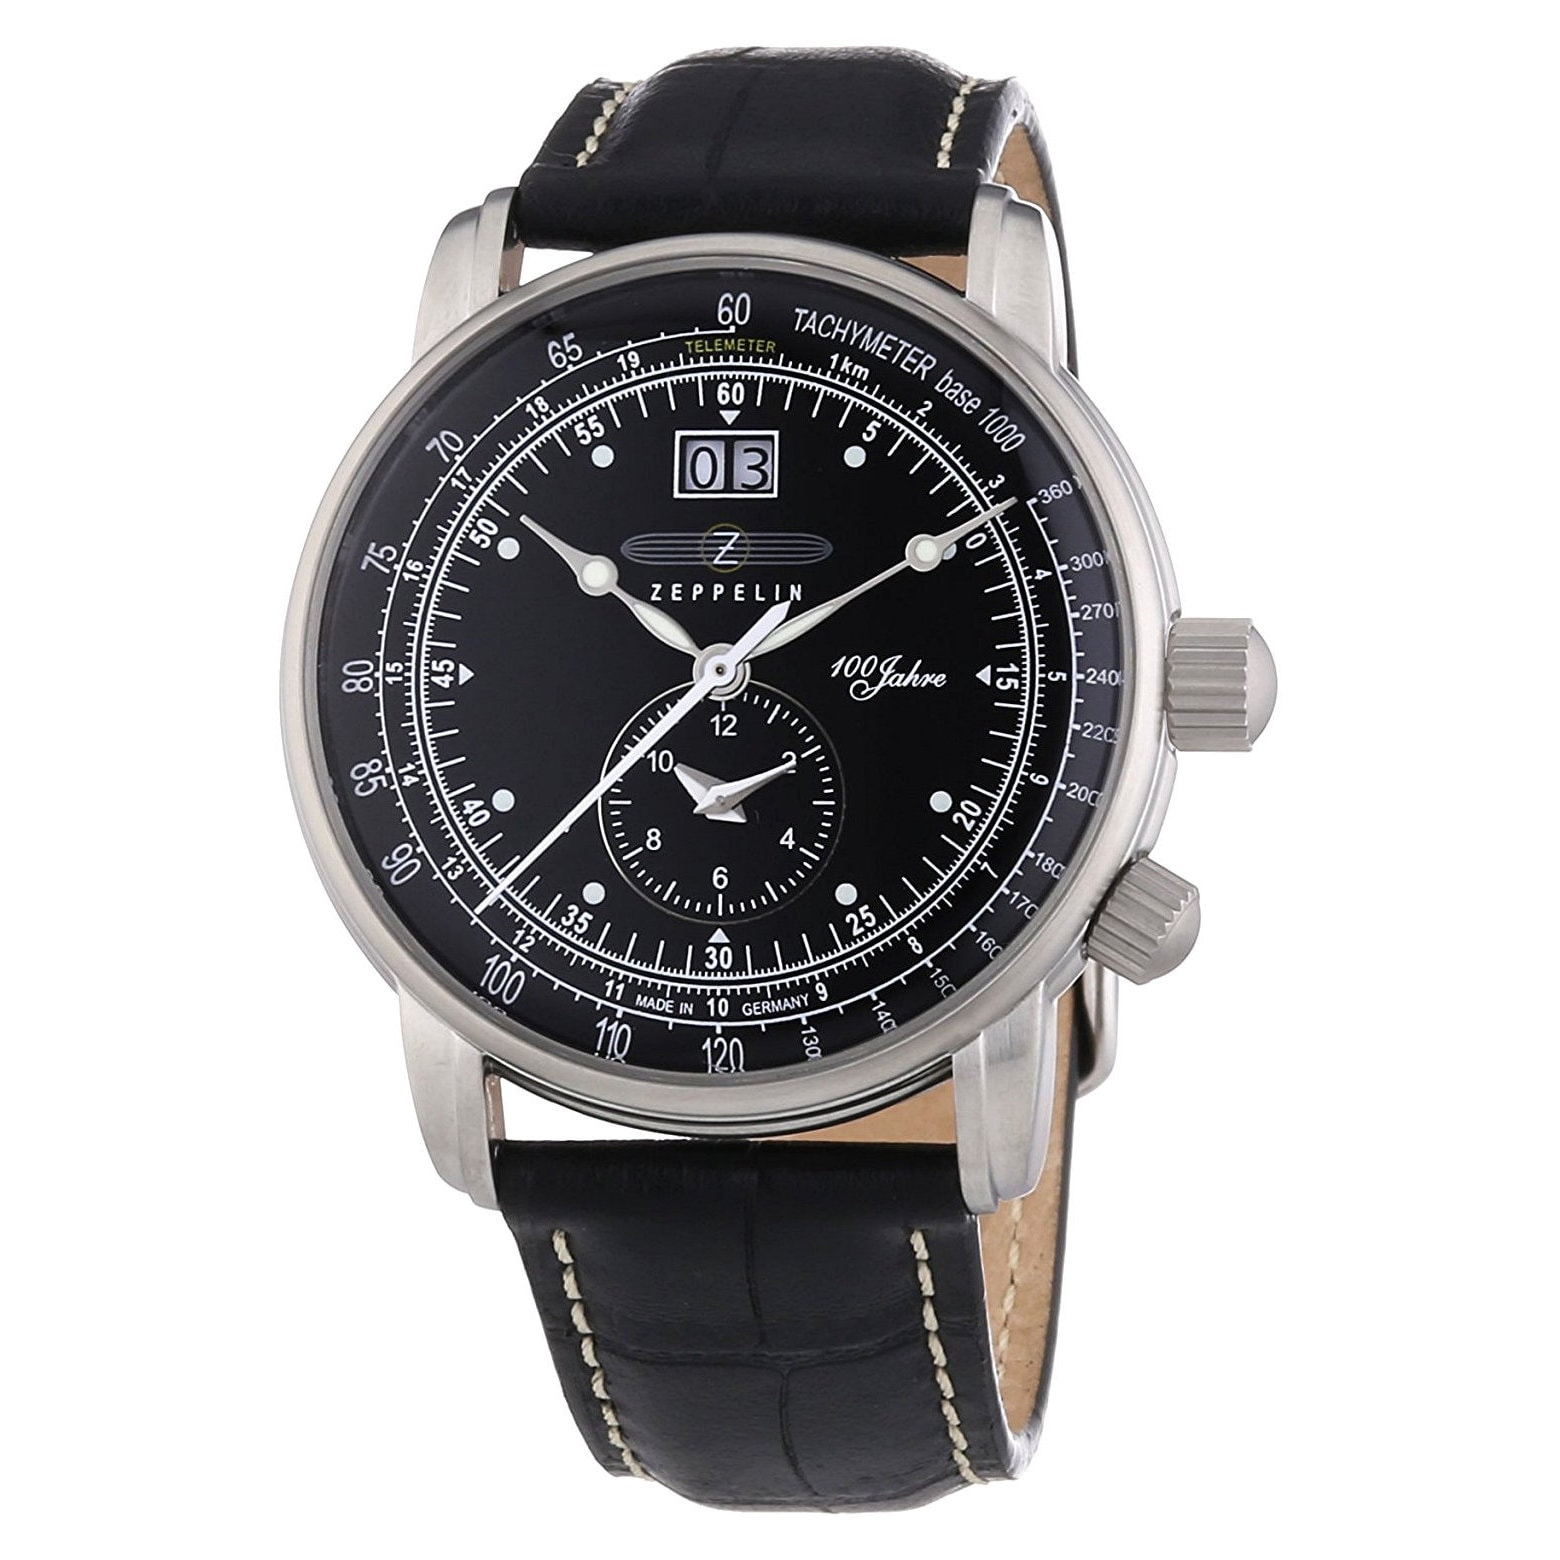 Graf Zeppelin German Made, Big Date, Dual Time Watch with...